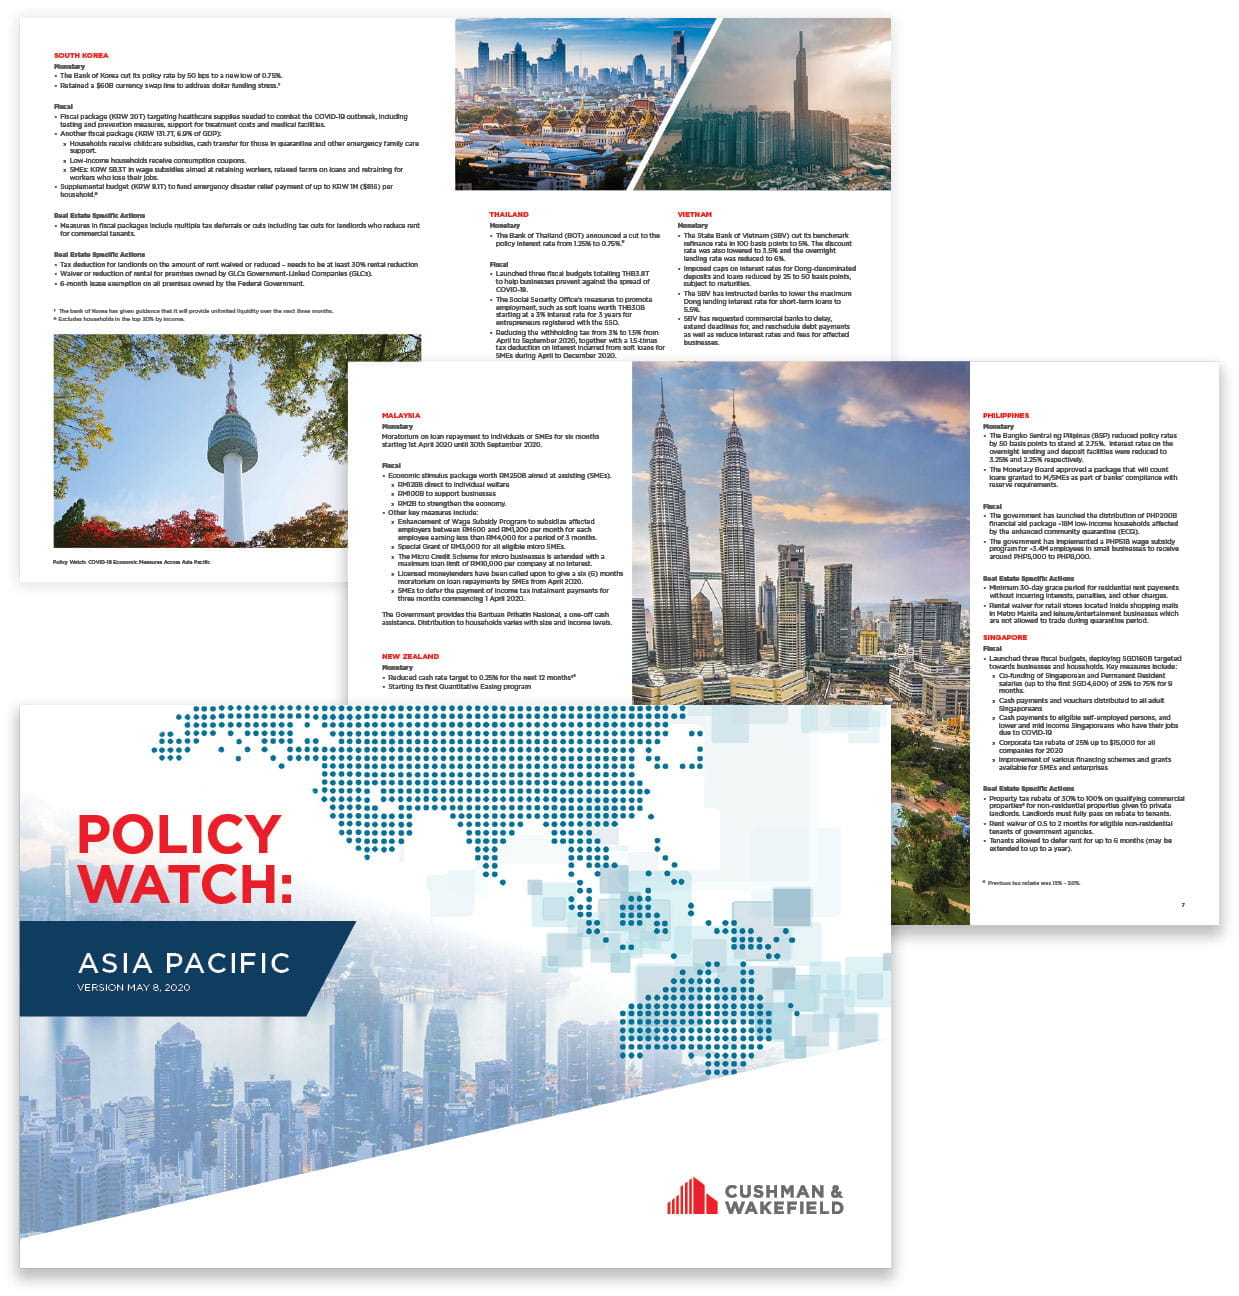 APAC Policy Watch (image)